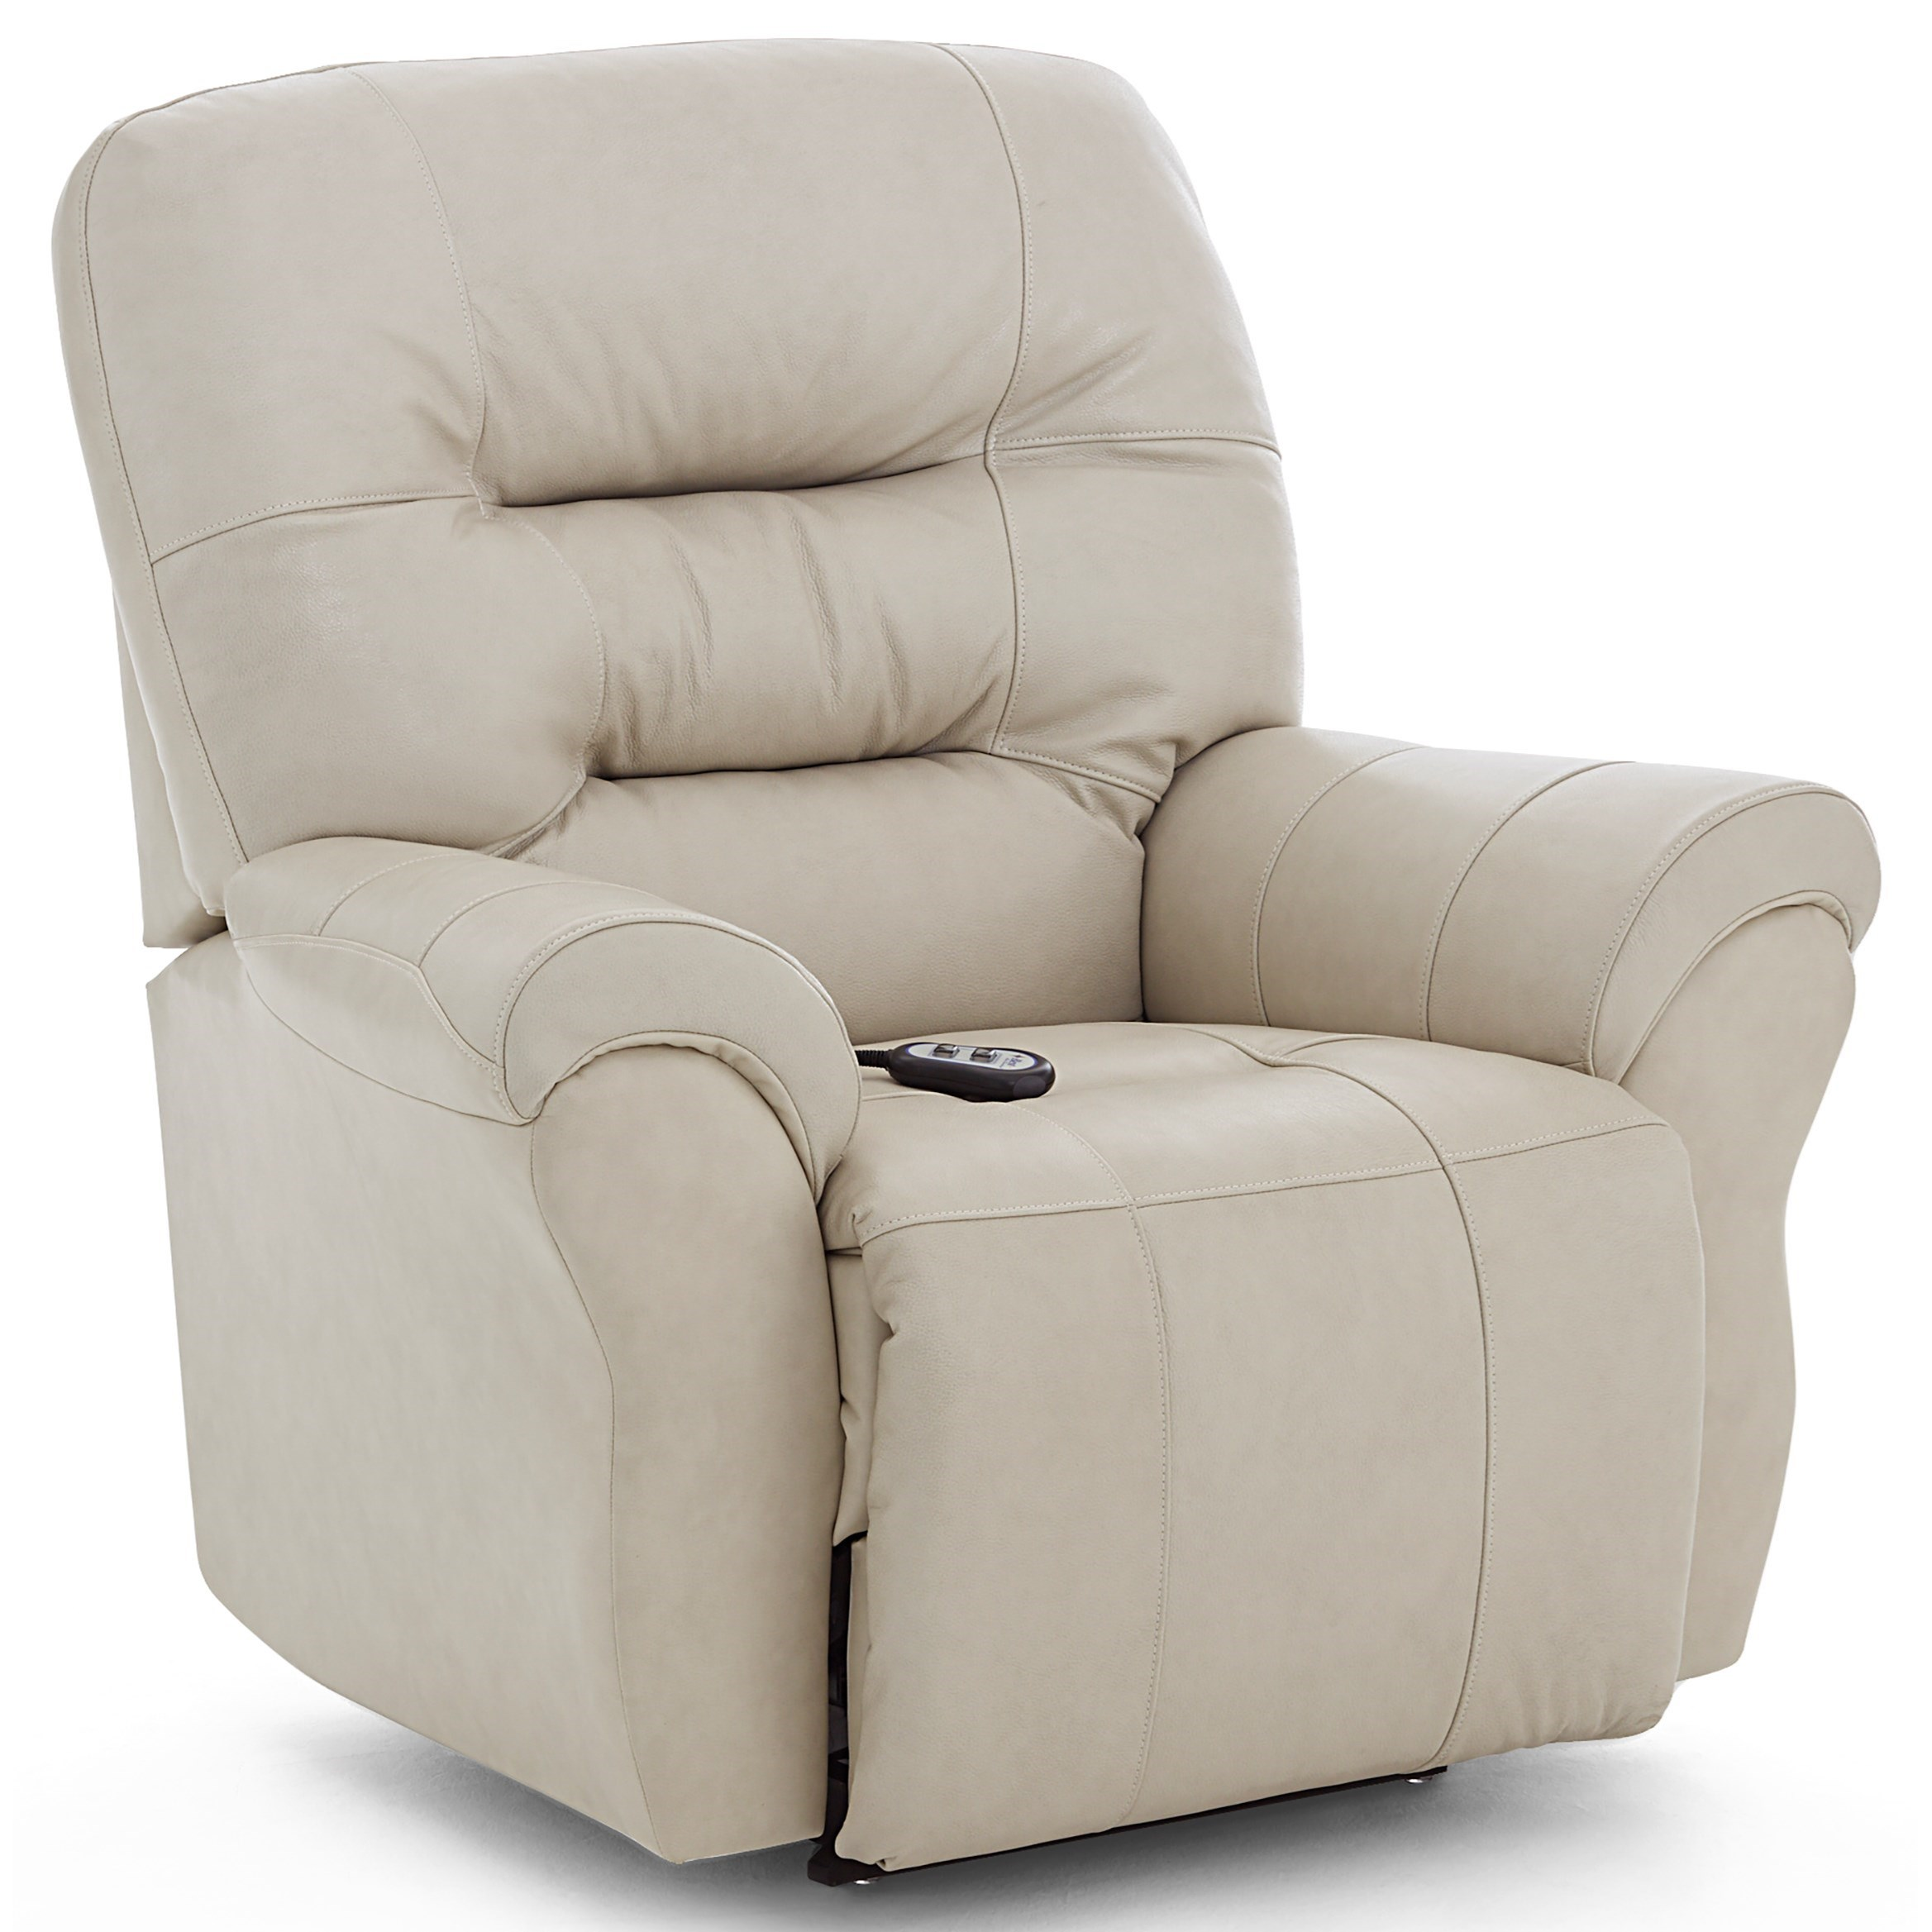 Unity Swivel Glider Recliner by Best Home Furnishings at Baer's Furniture